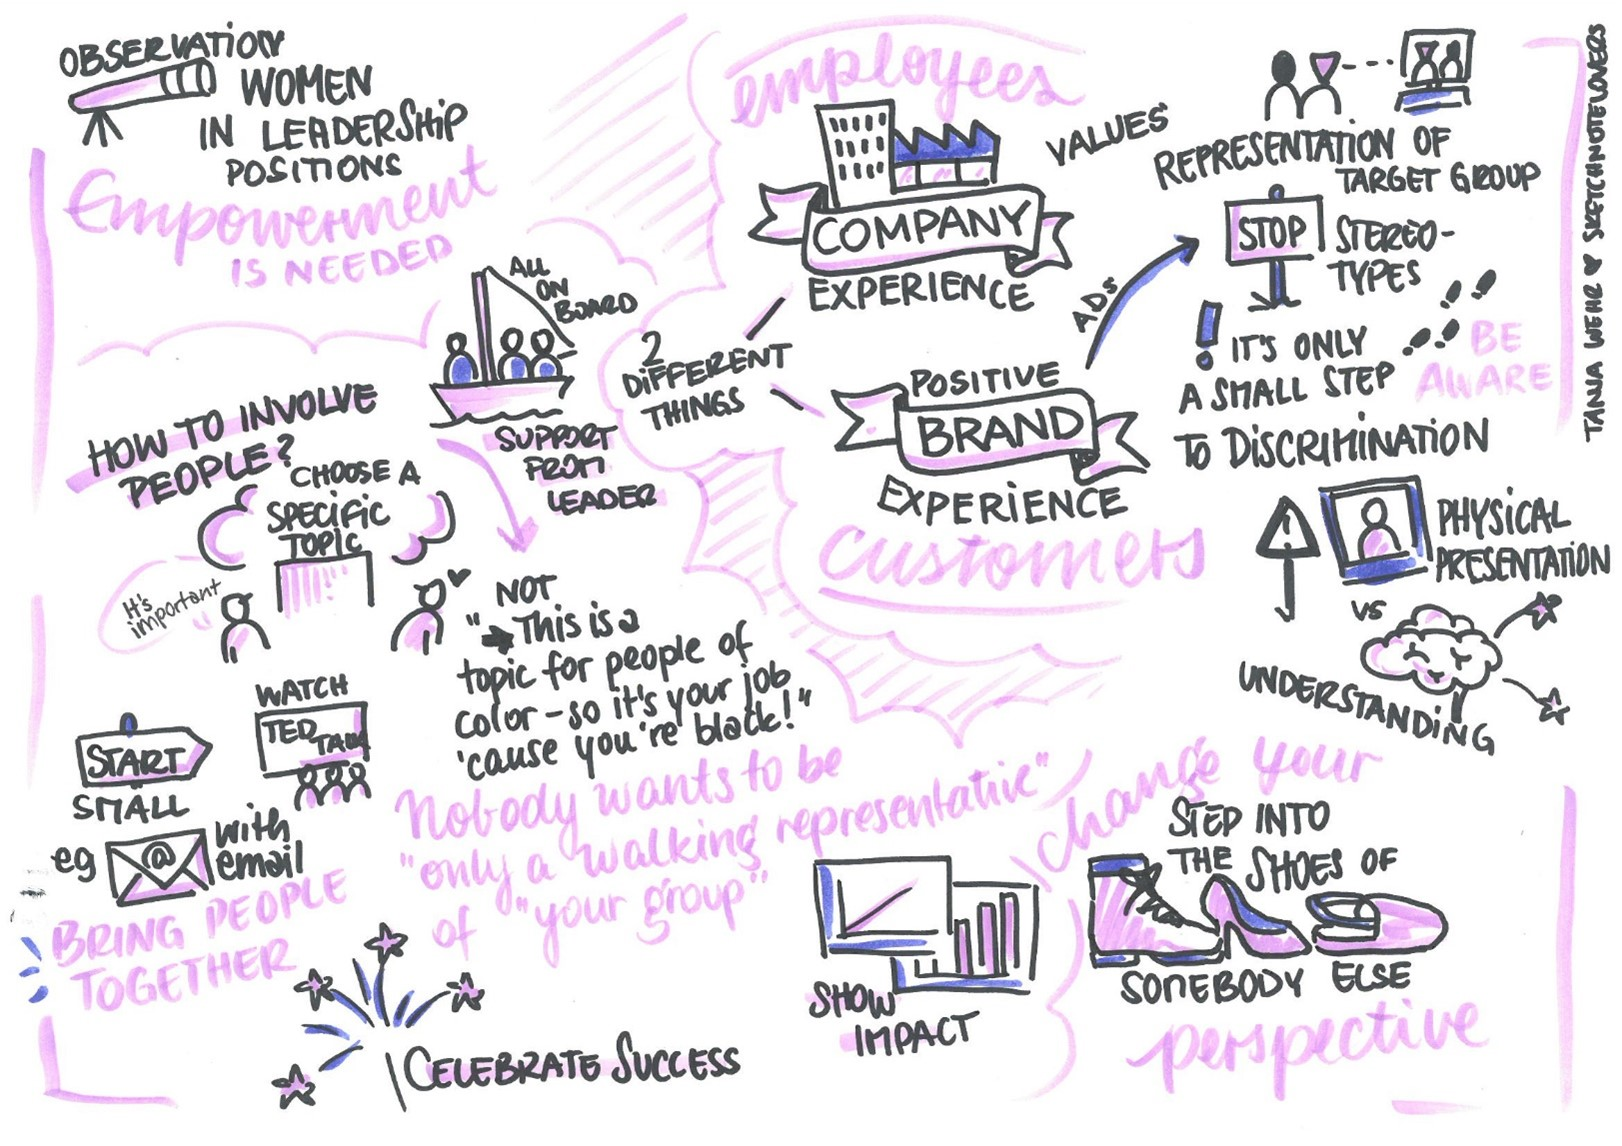 This graphic summarizes visually the conversation which has been stated above. It's about Empowerment of employees, how to change perspective and how bringing people together.